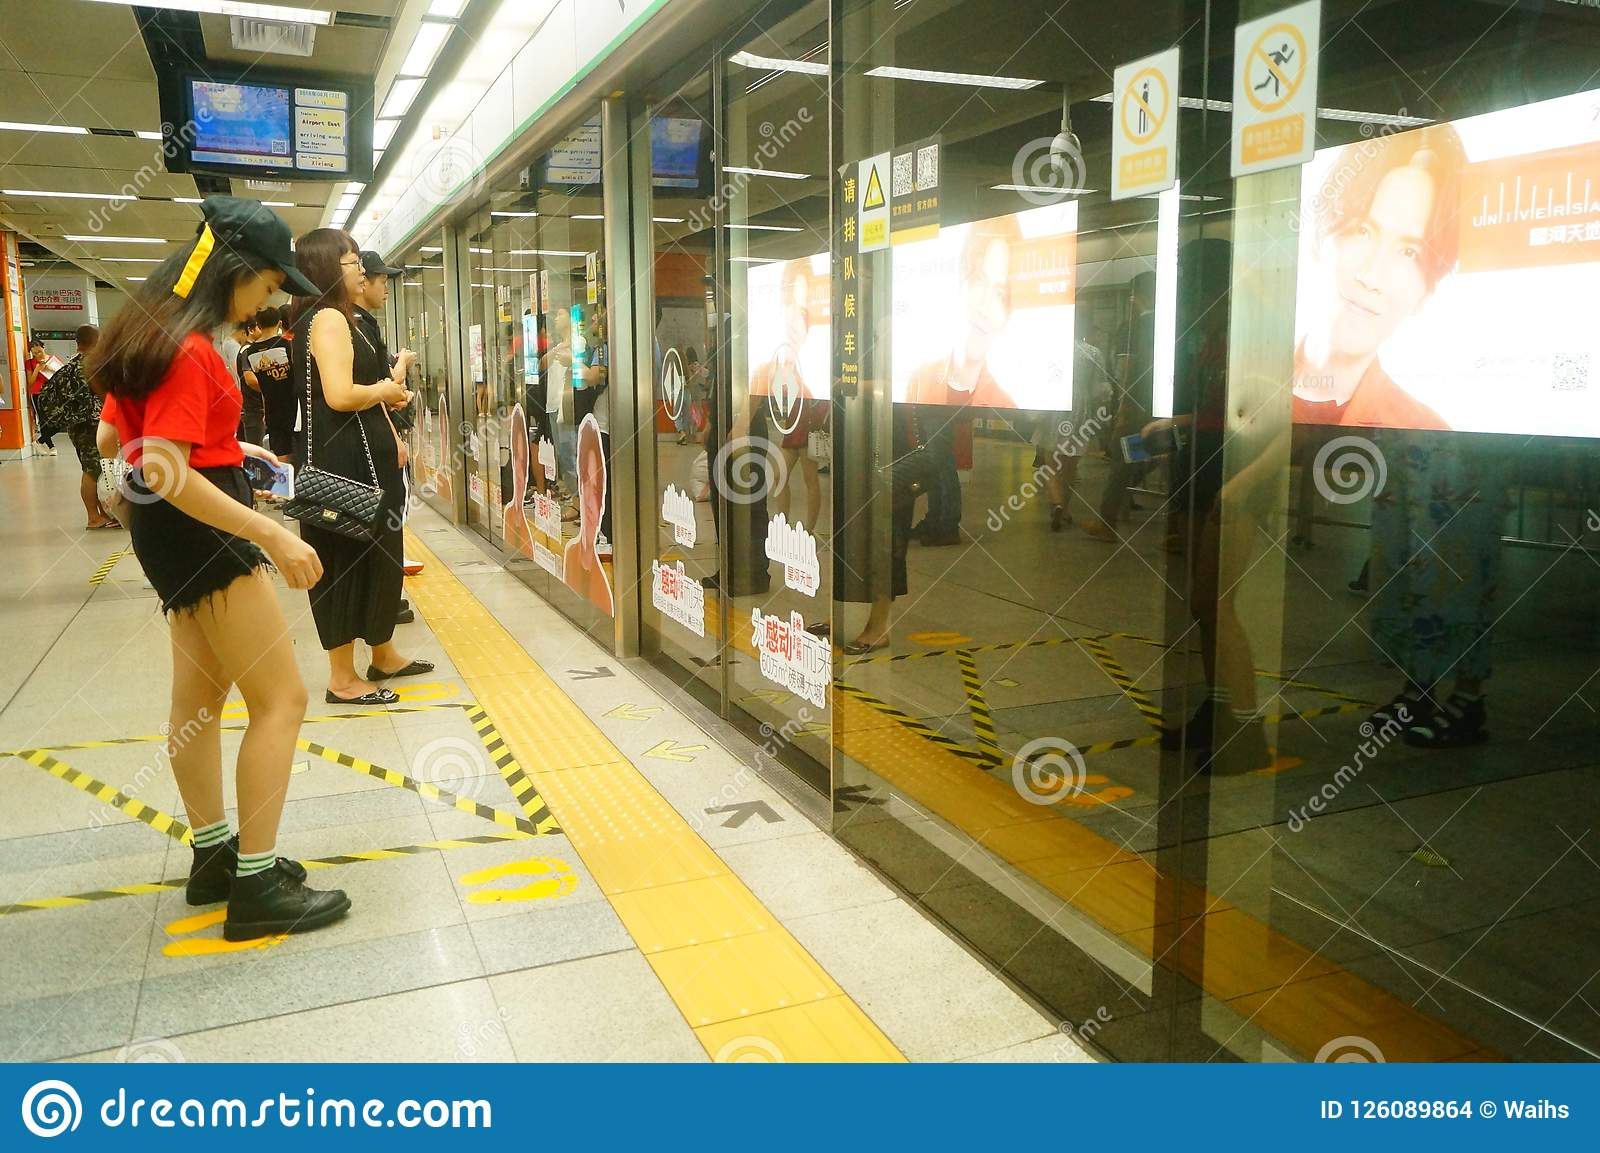 Shenzhen, China: landscape of Che Kung Temple subway station, male and female passengers